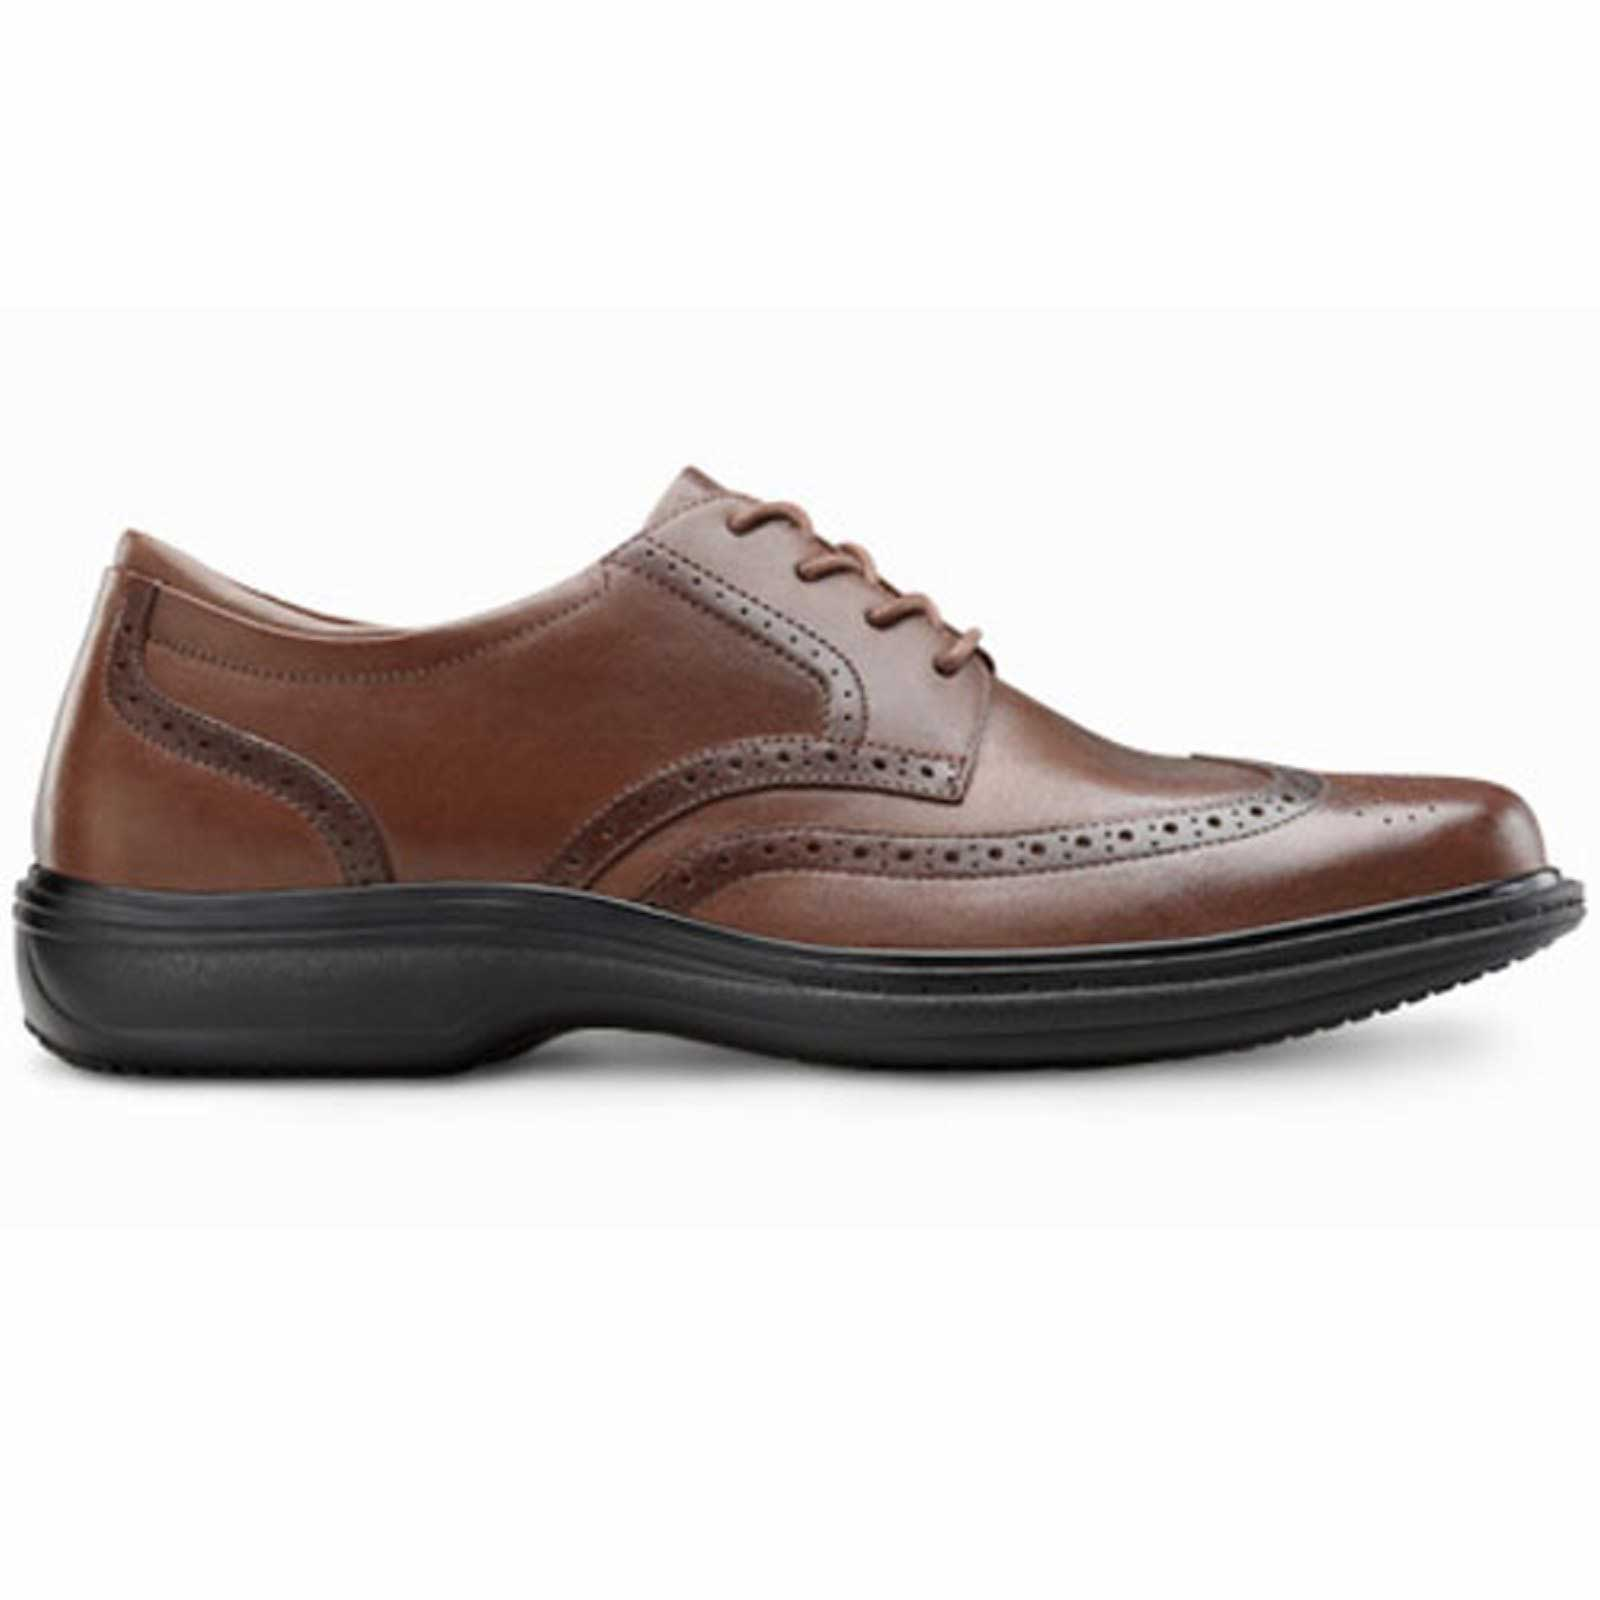 Warrior Liberty Comfort for Men Lace Up Shoes - Buy BLACK Color